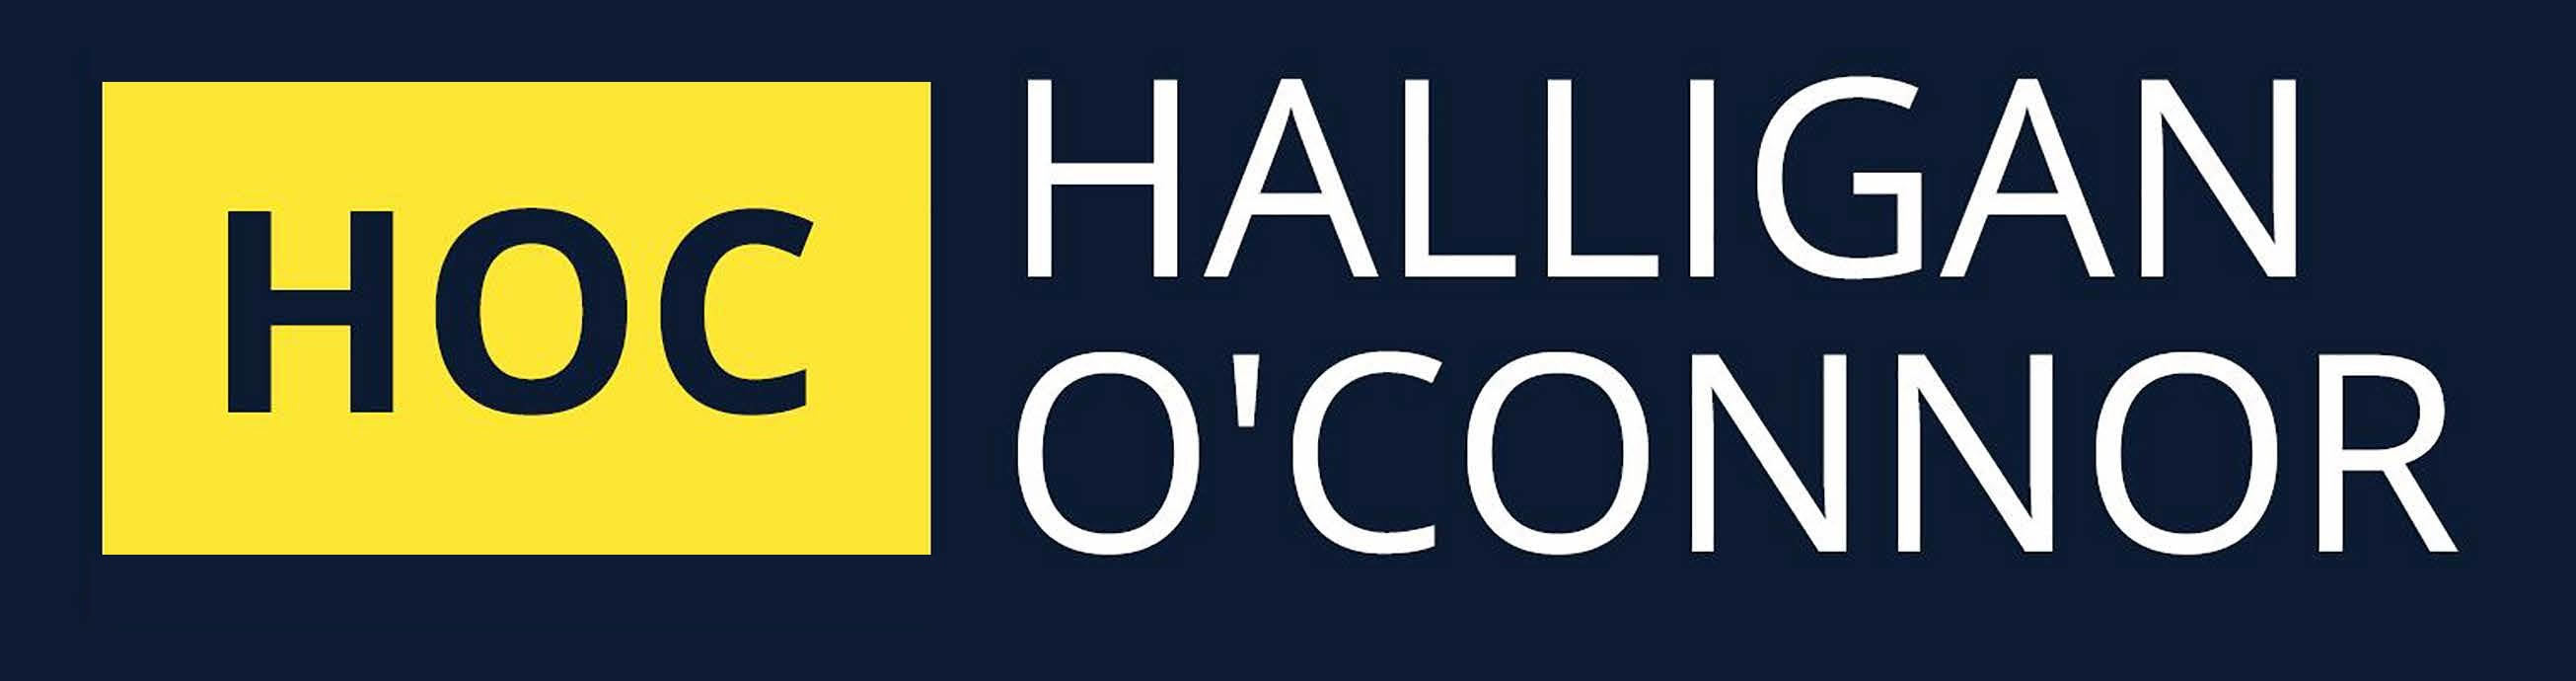 Halligan O'Connor Property Consultants